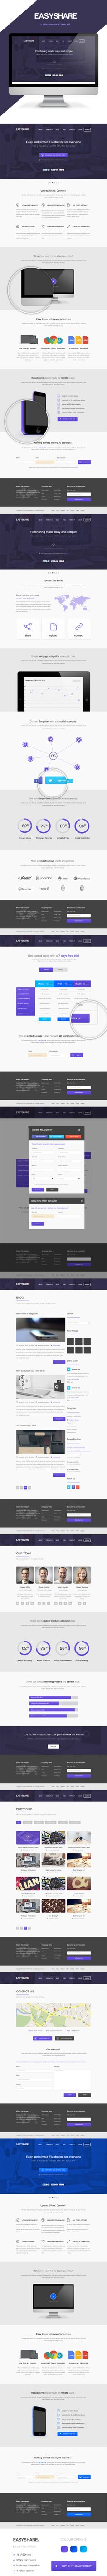 Easyshare - Filesharing PSD Template by Patrick, via Behance